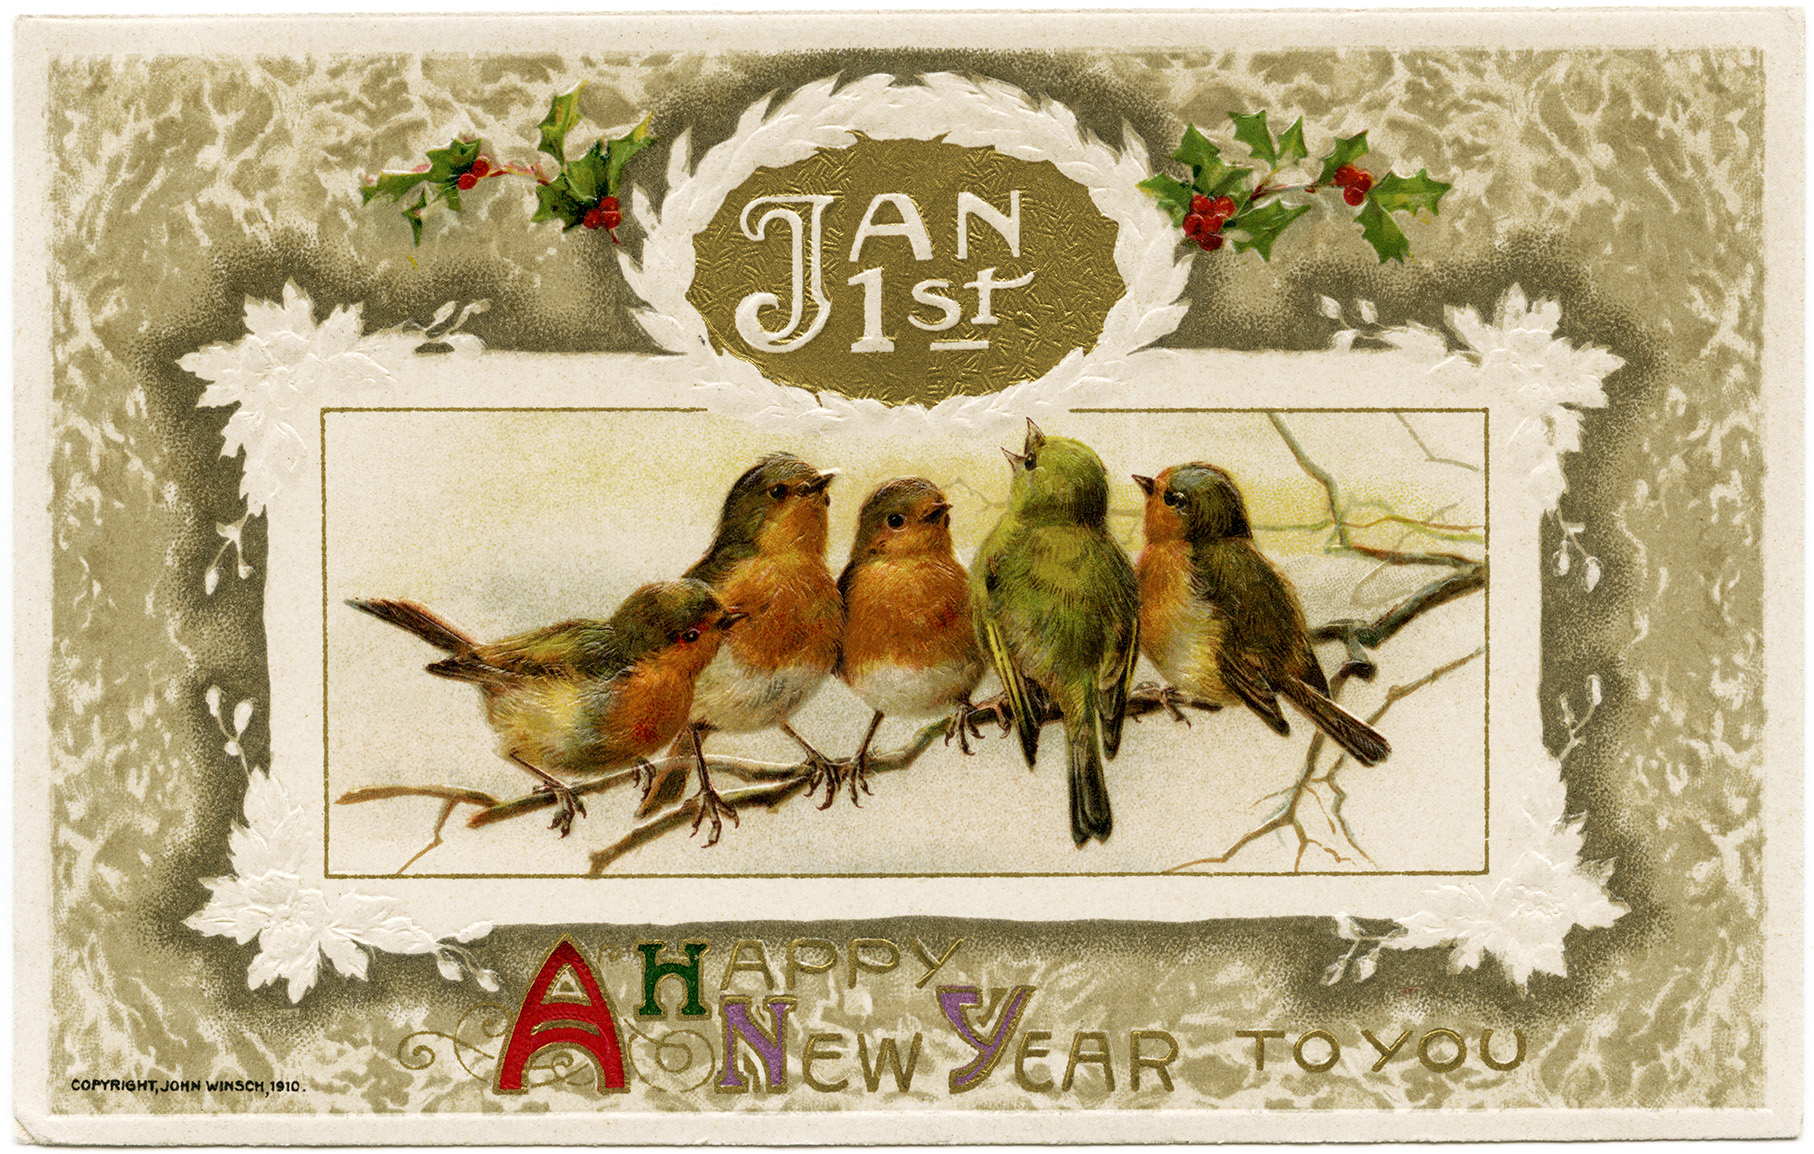 Happy New Year Vintage Images